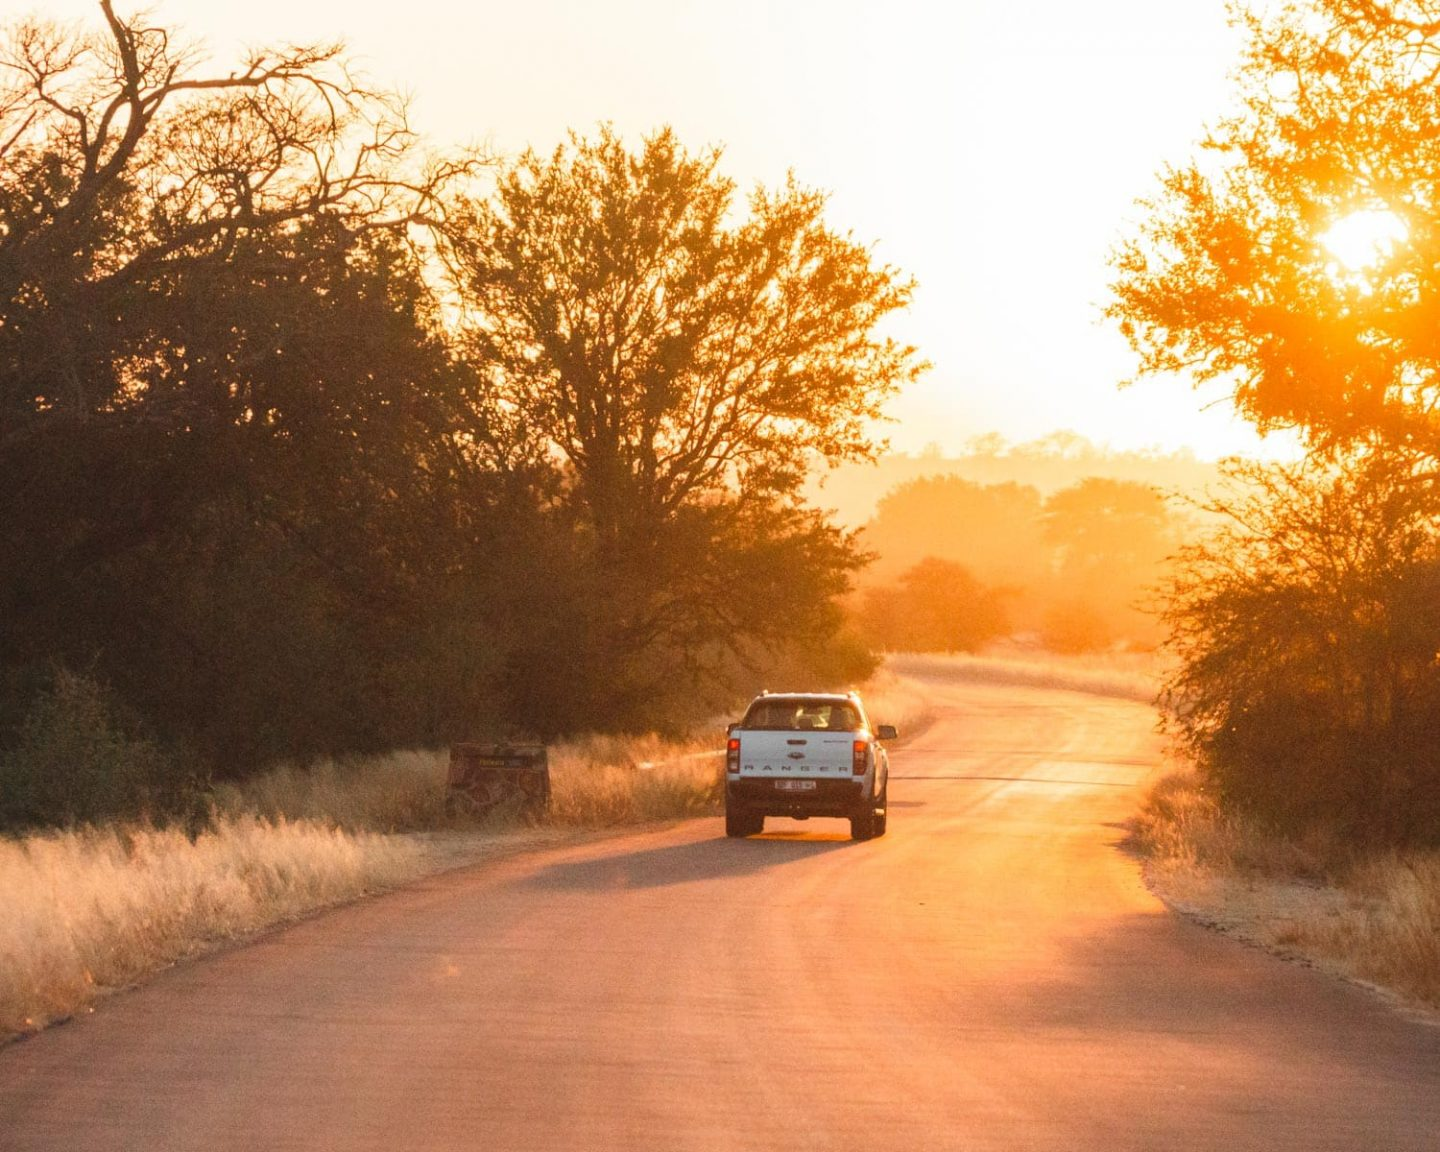 driving through kruger national park at sunset